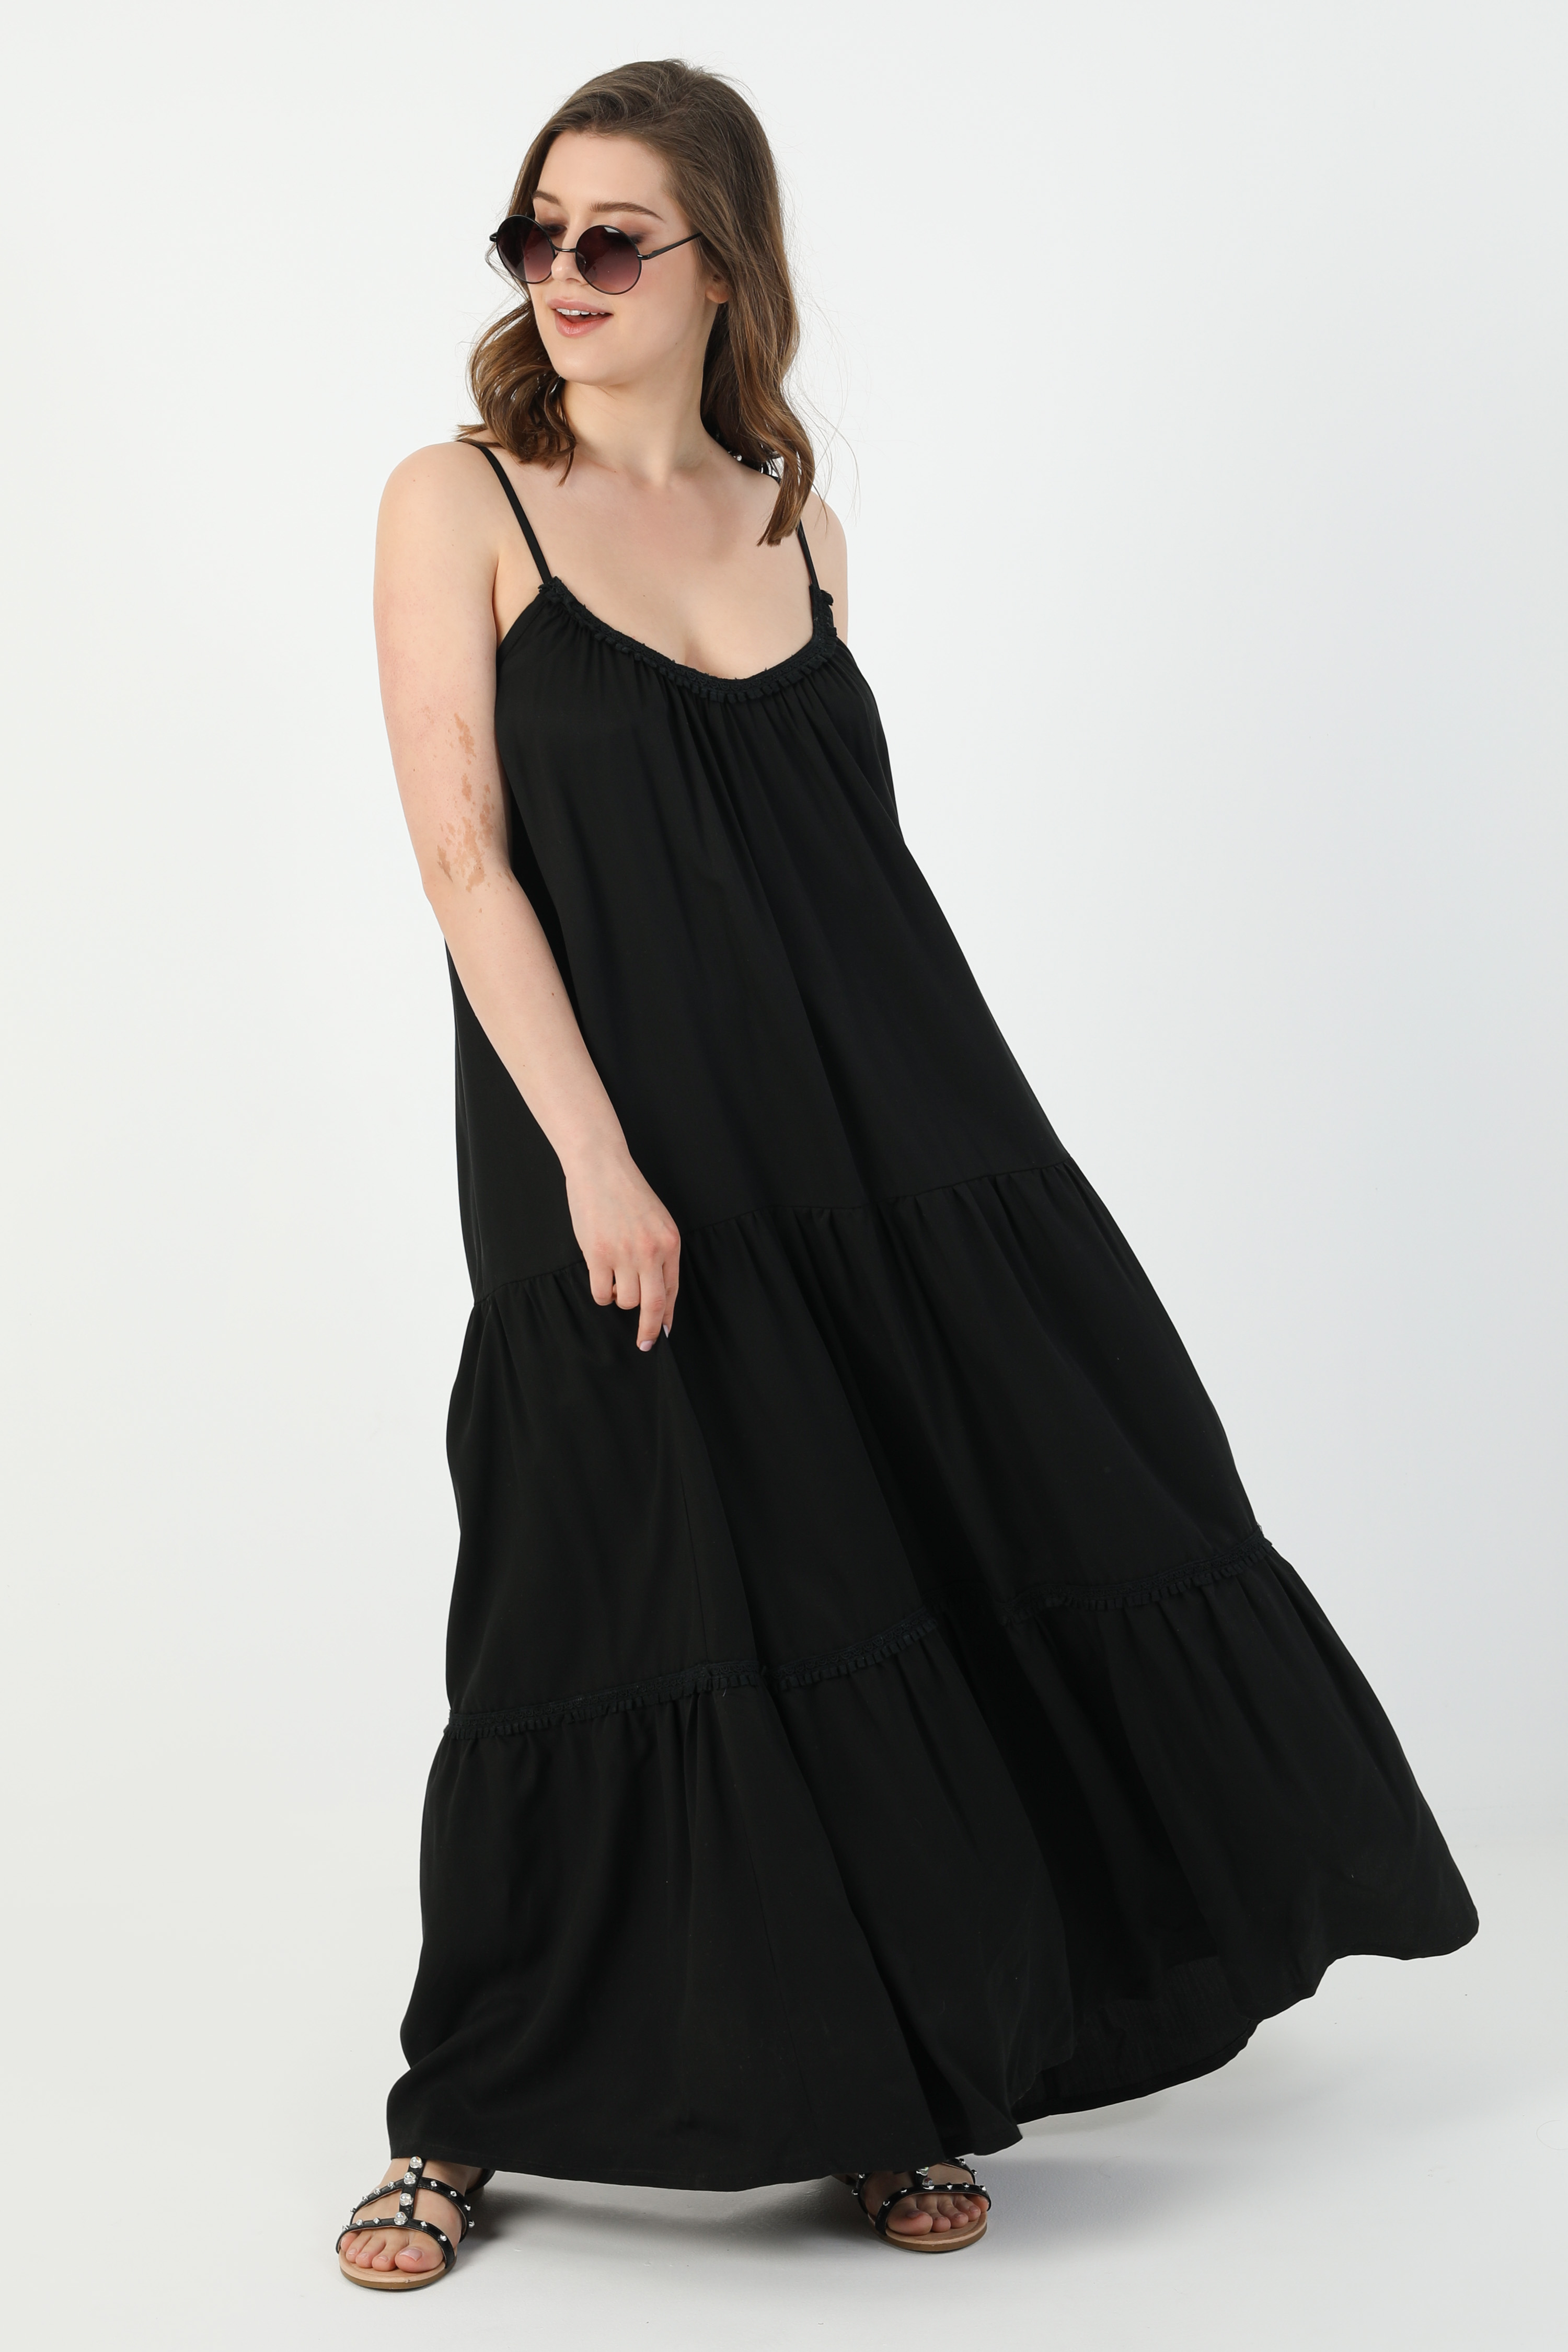 Plain dress with bohemian straps (expedition 10/15 June)